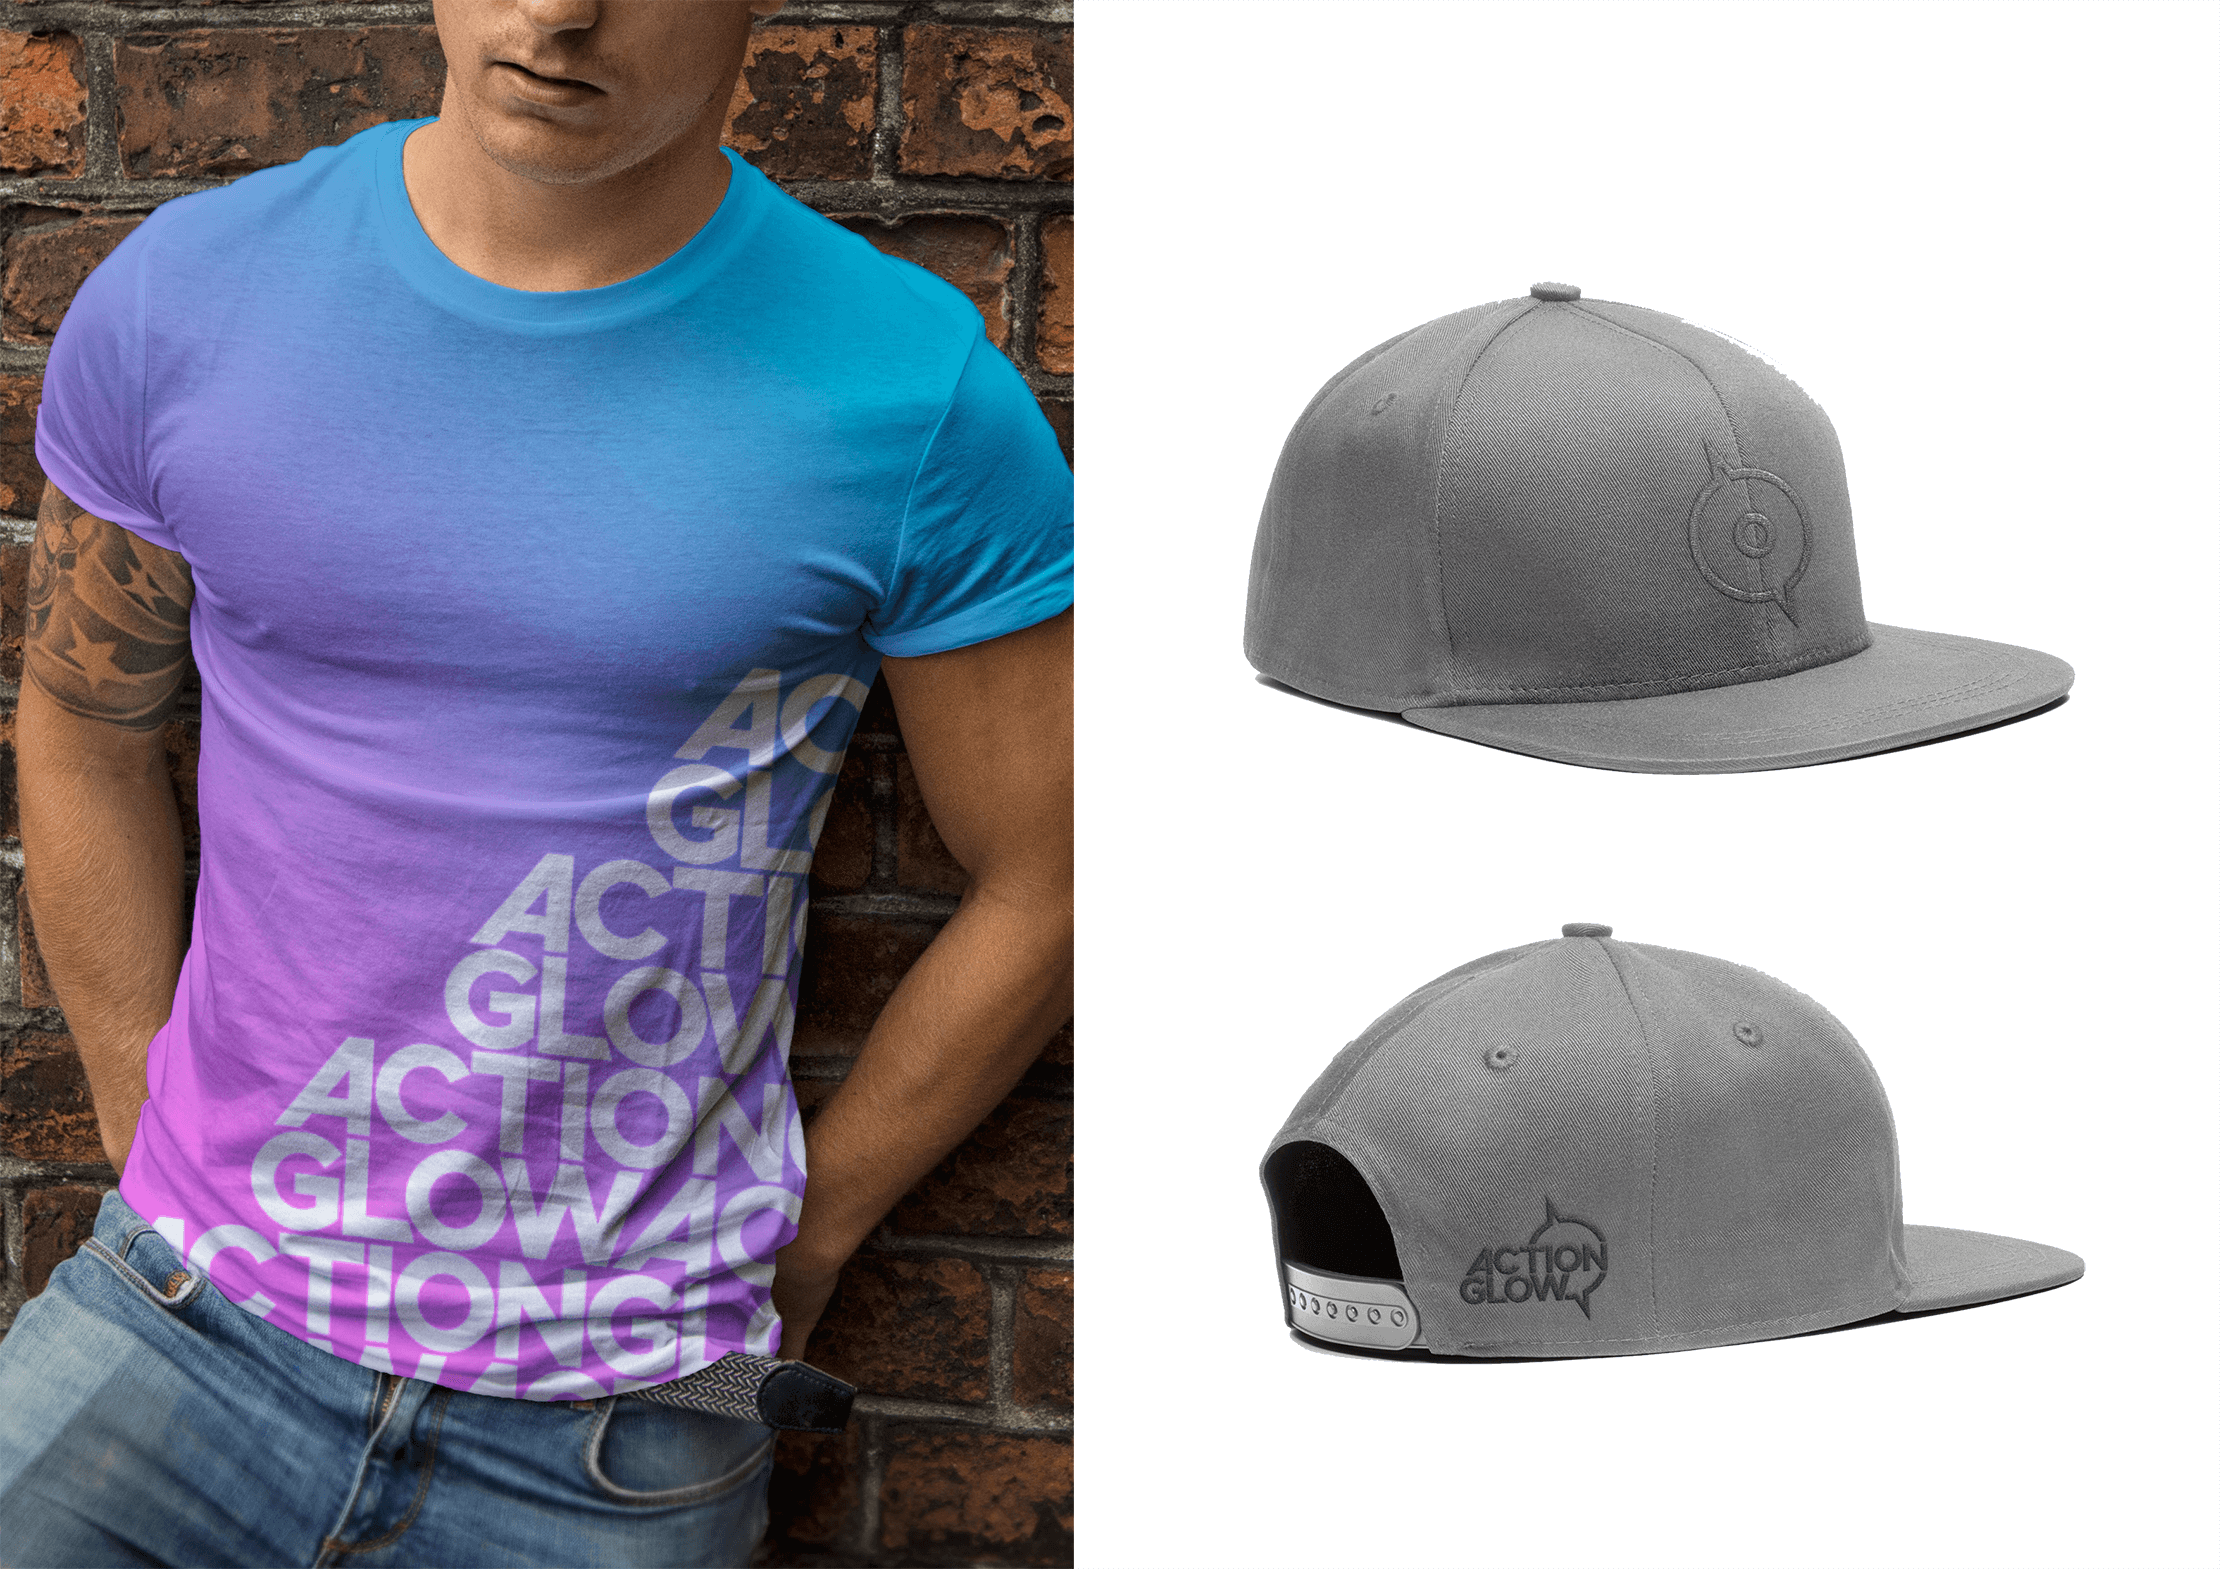 ActionGlow shirt and hat